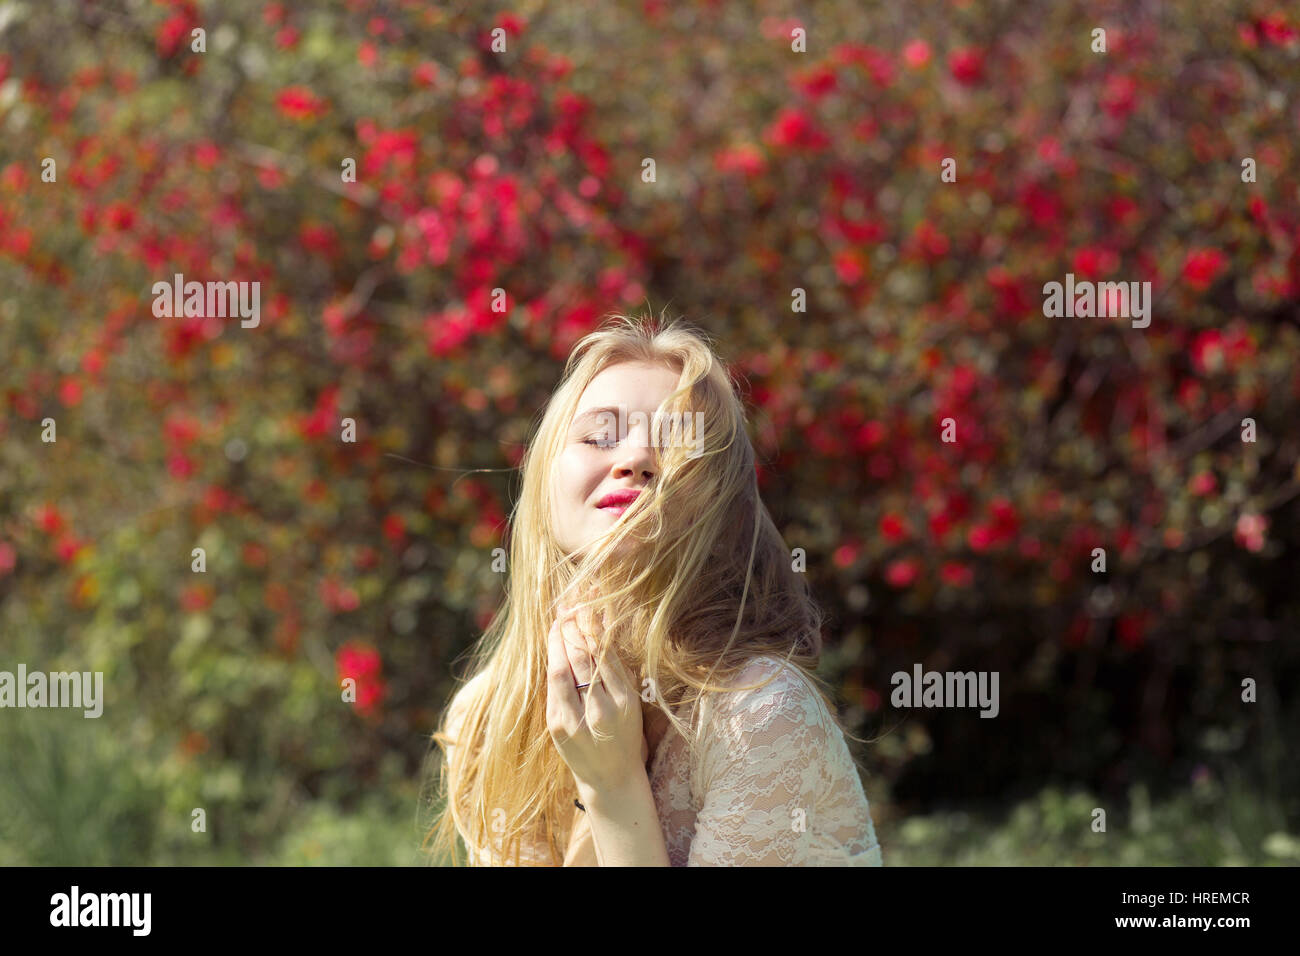 Blonde Young Woman in Spring Garden. Girl with Perfect Natural Make ...